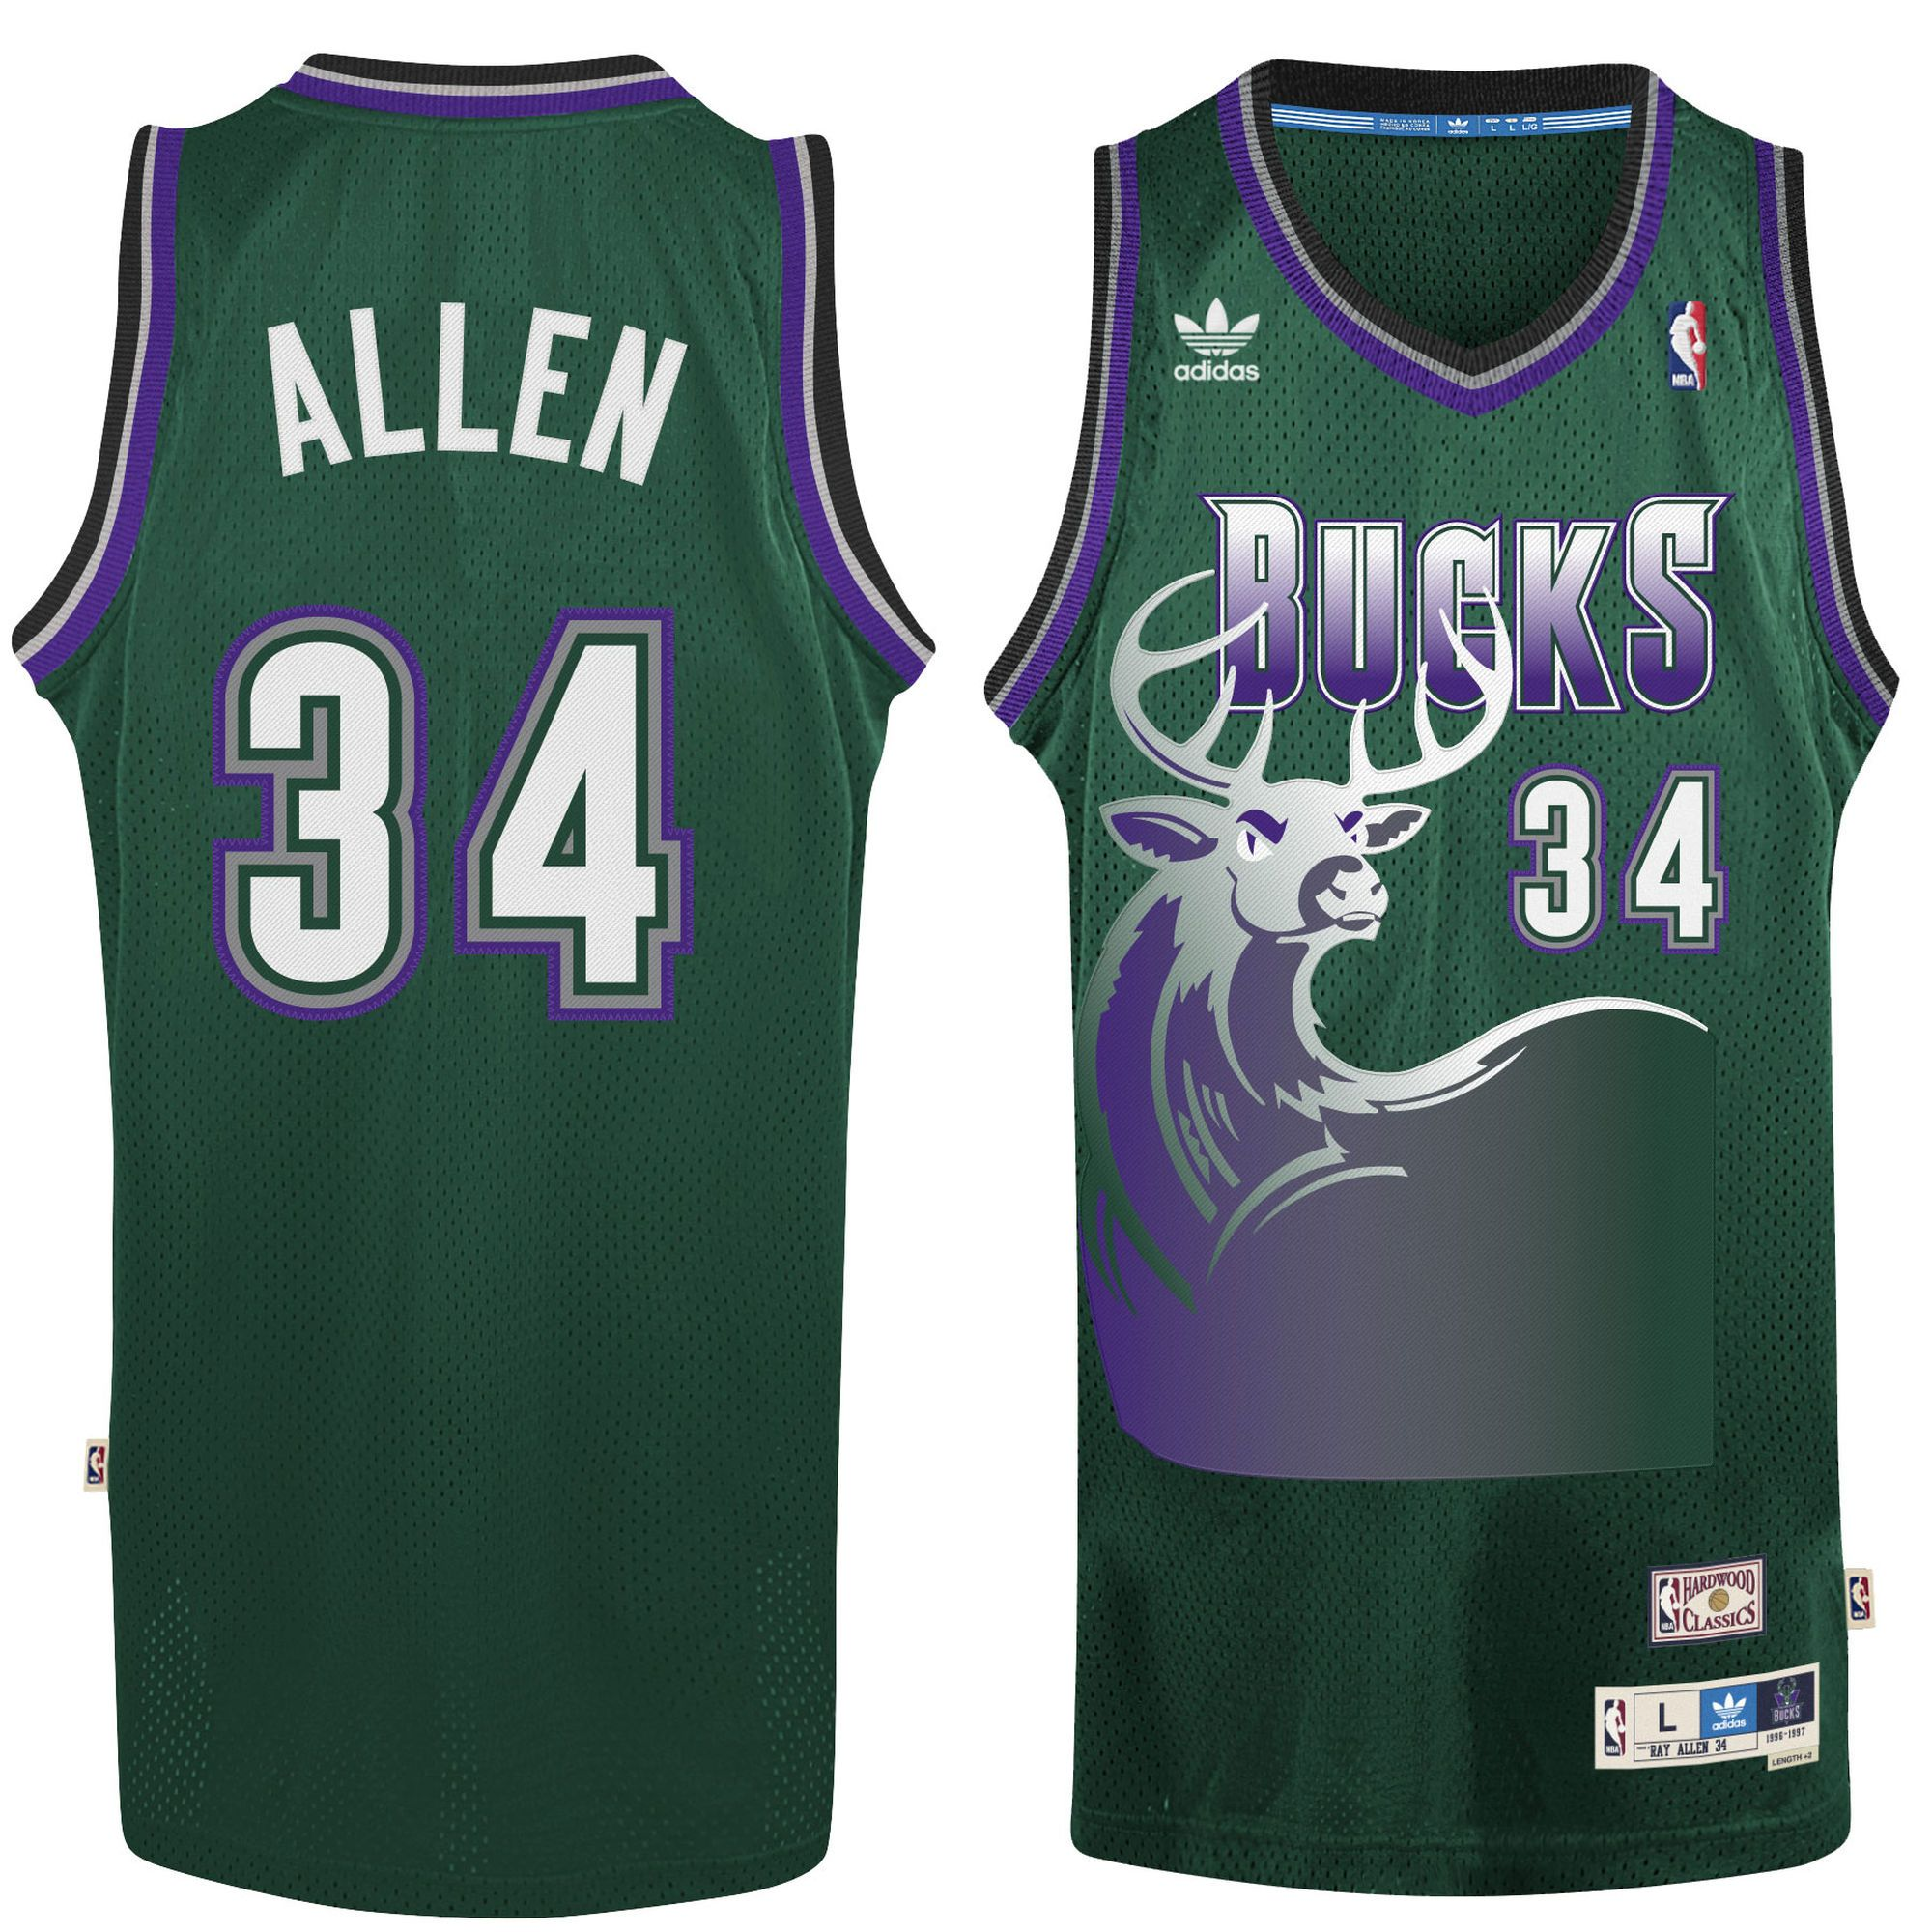 12d8d4b7d12 ... ray allen milwaukee bucks adidas hardwood classic swingman jersey  hunter green